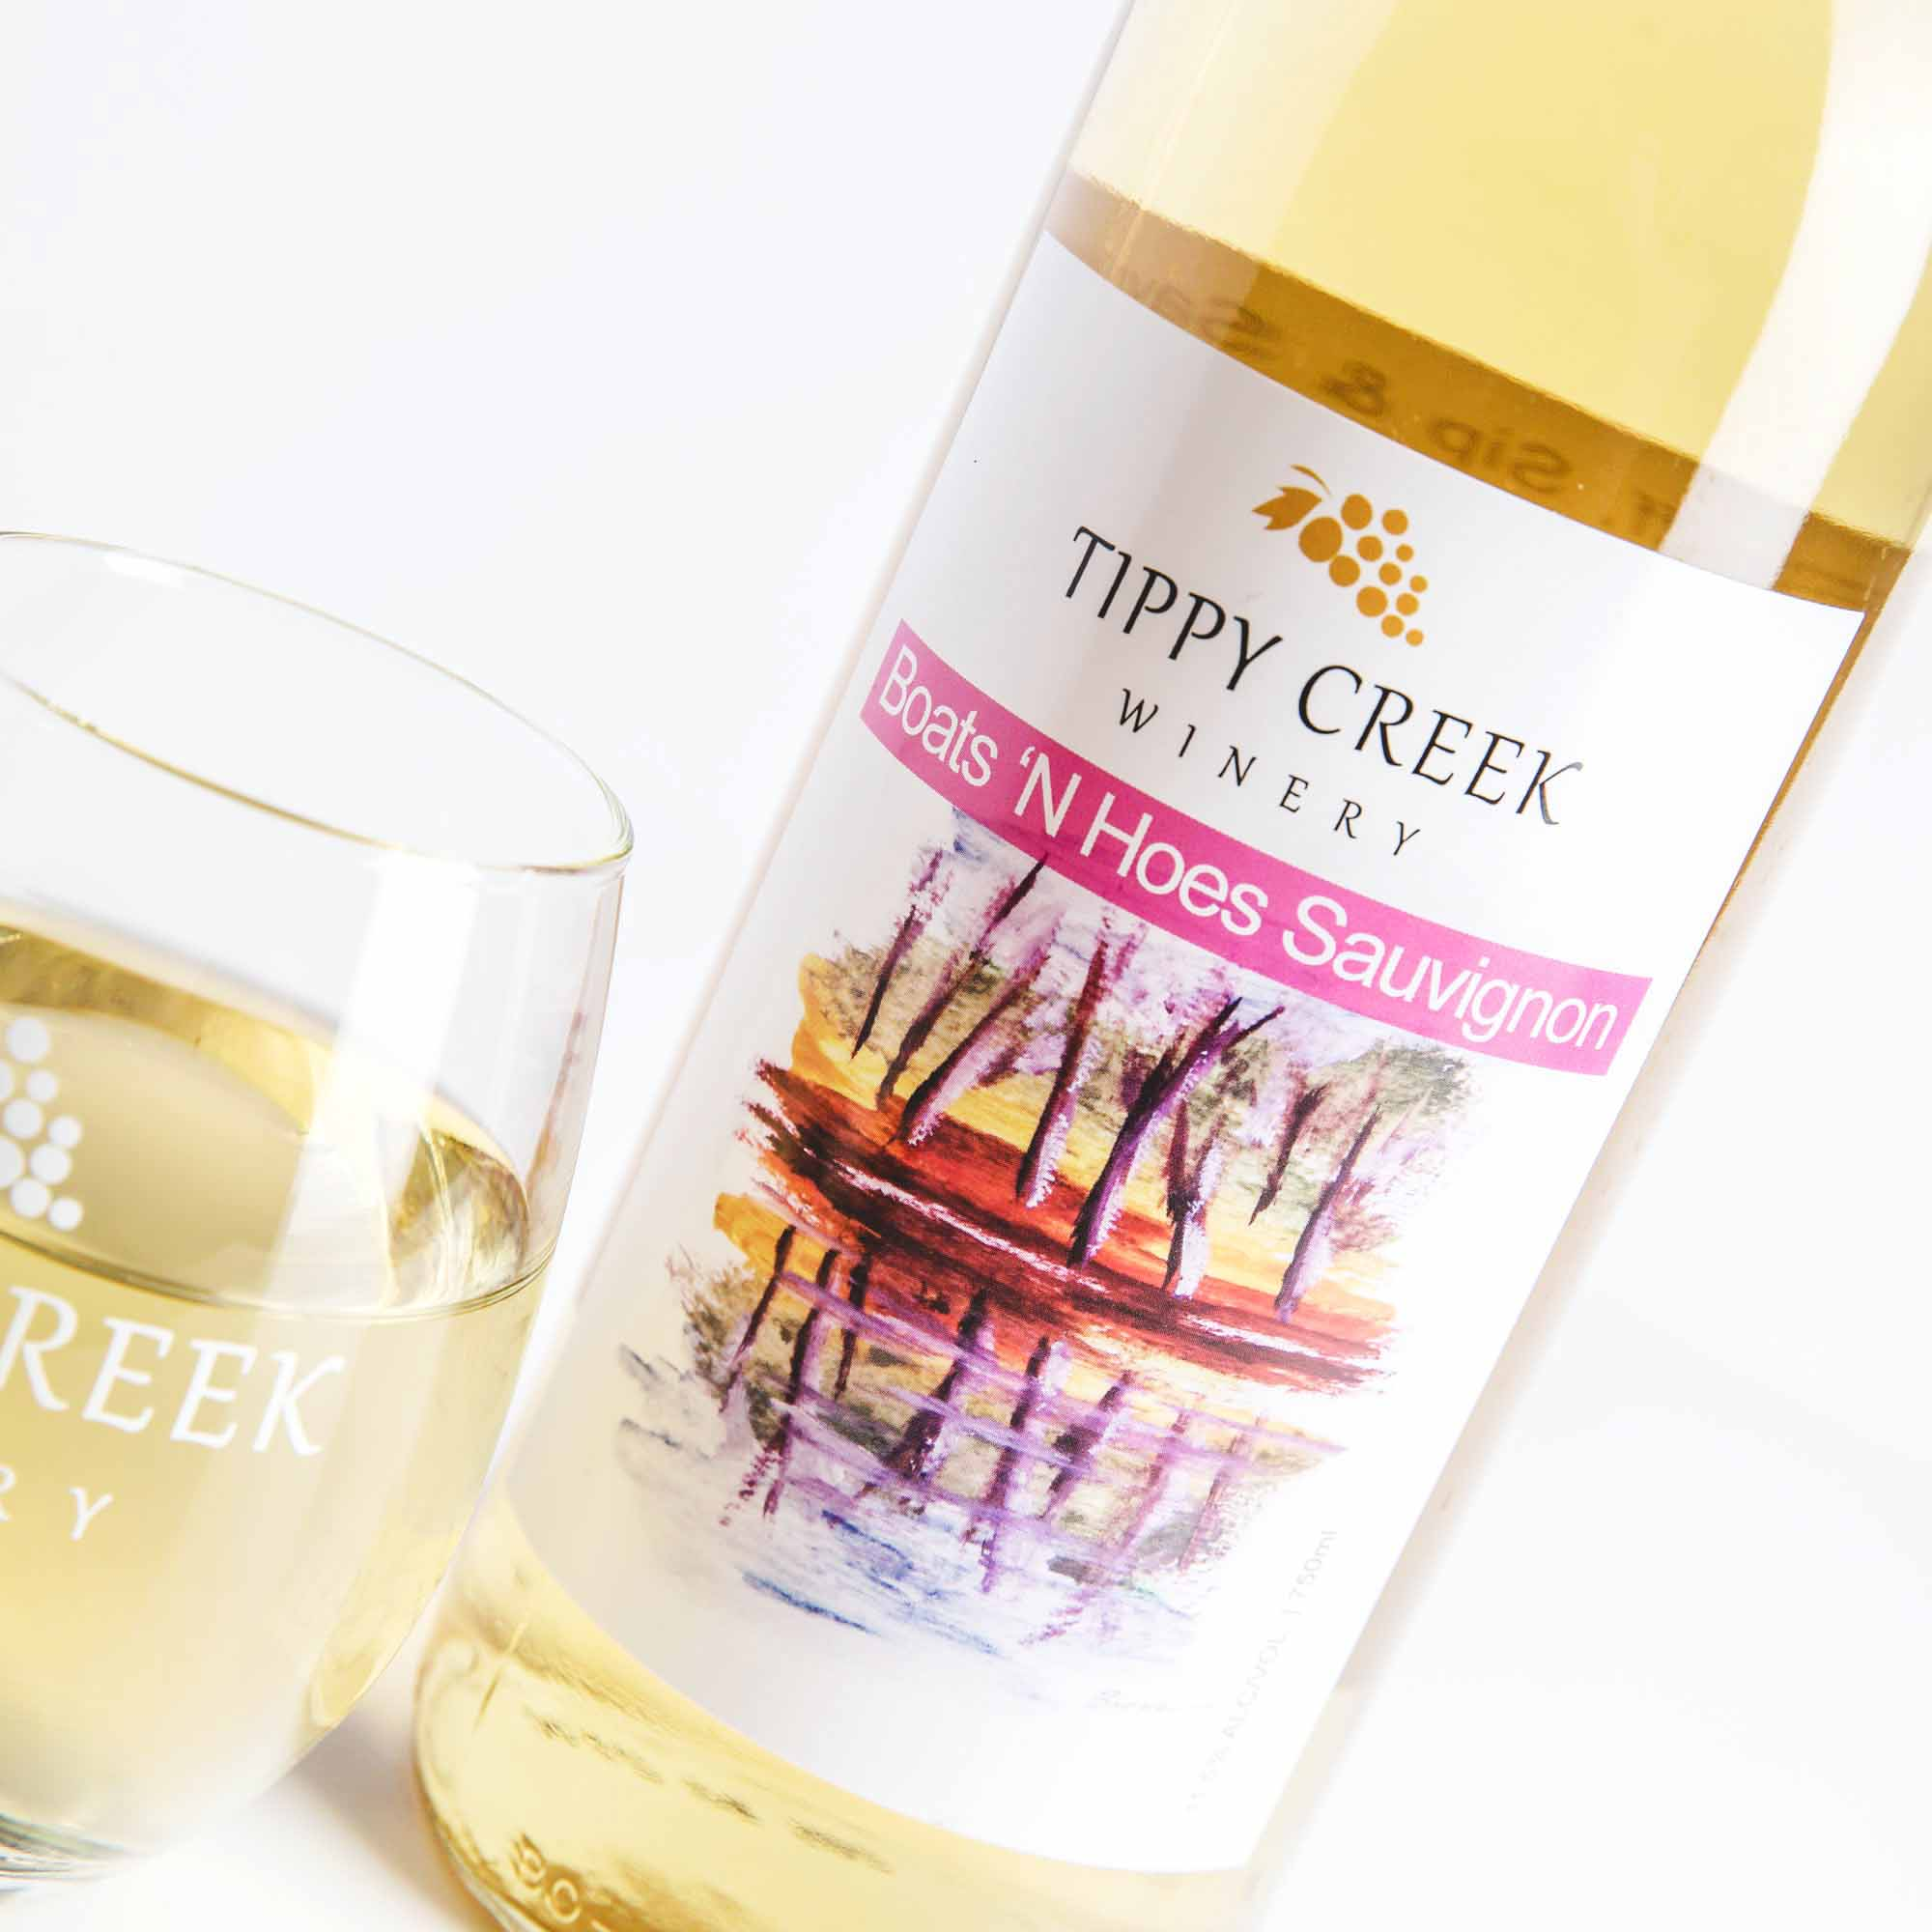 Boats 'N Hoes Sauvignon. White Wine by Tippy Creek Winery.